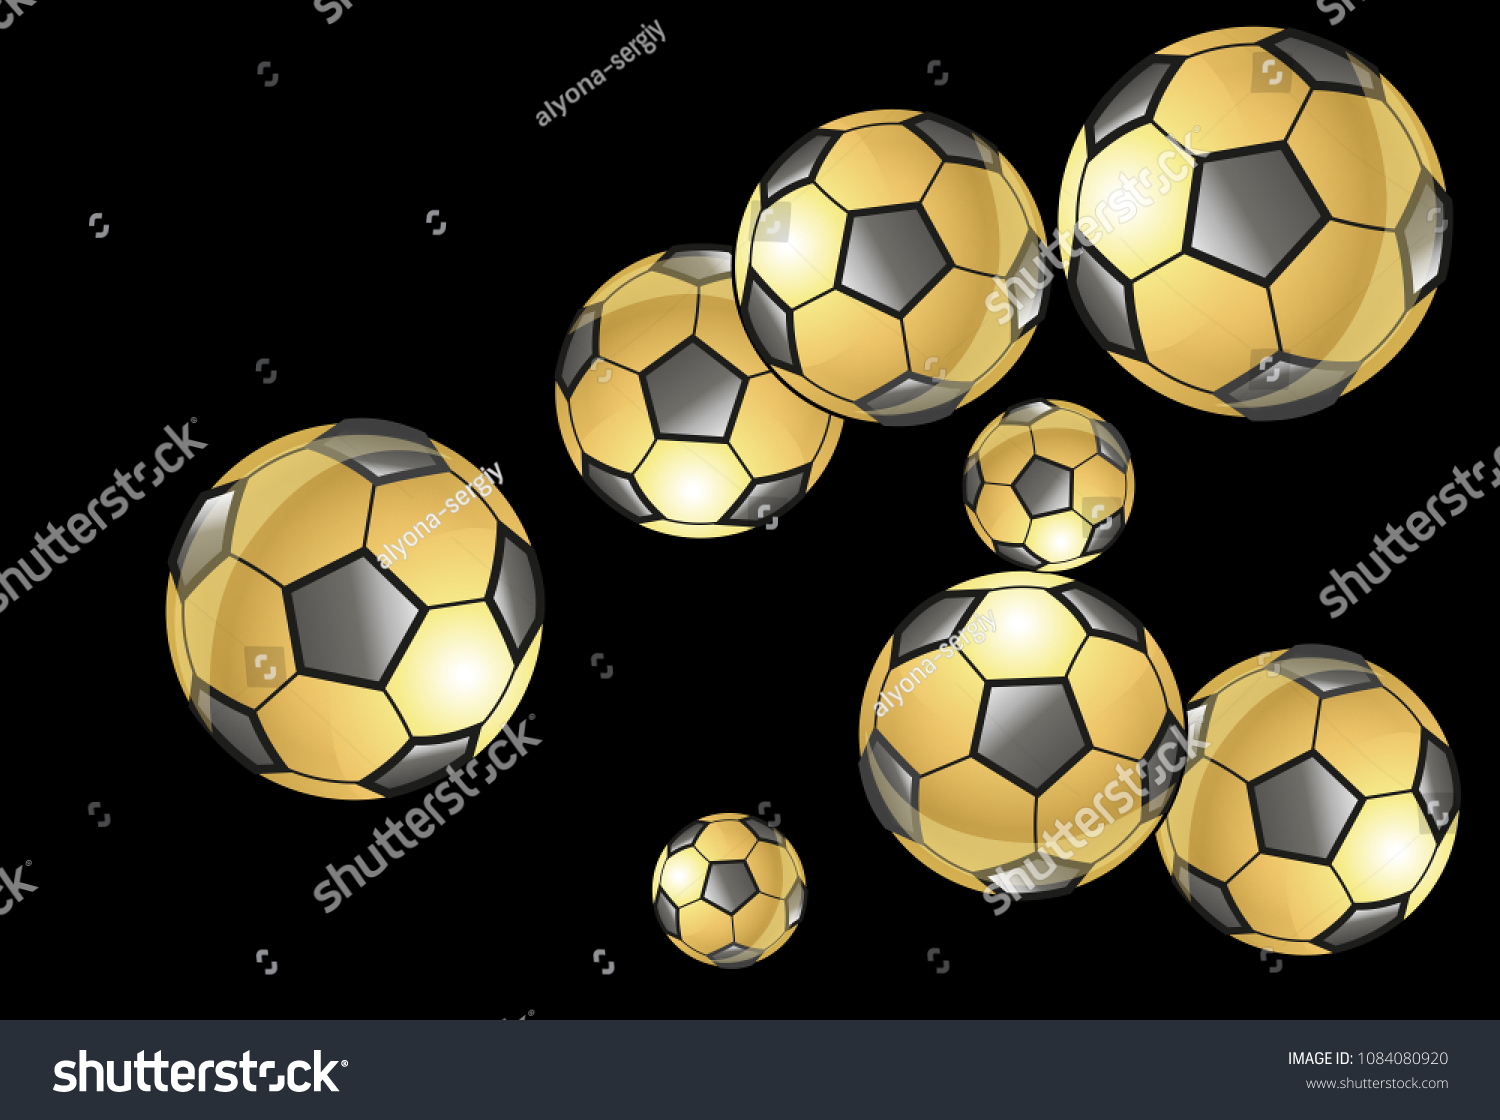 Background Soccer Balls Colorful Sportish Wallpaper Stock Vector Royalty Free 1084080920